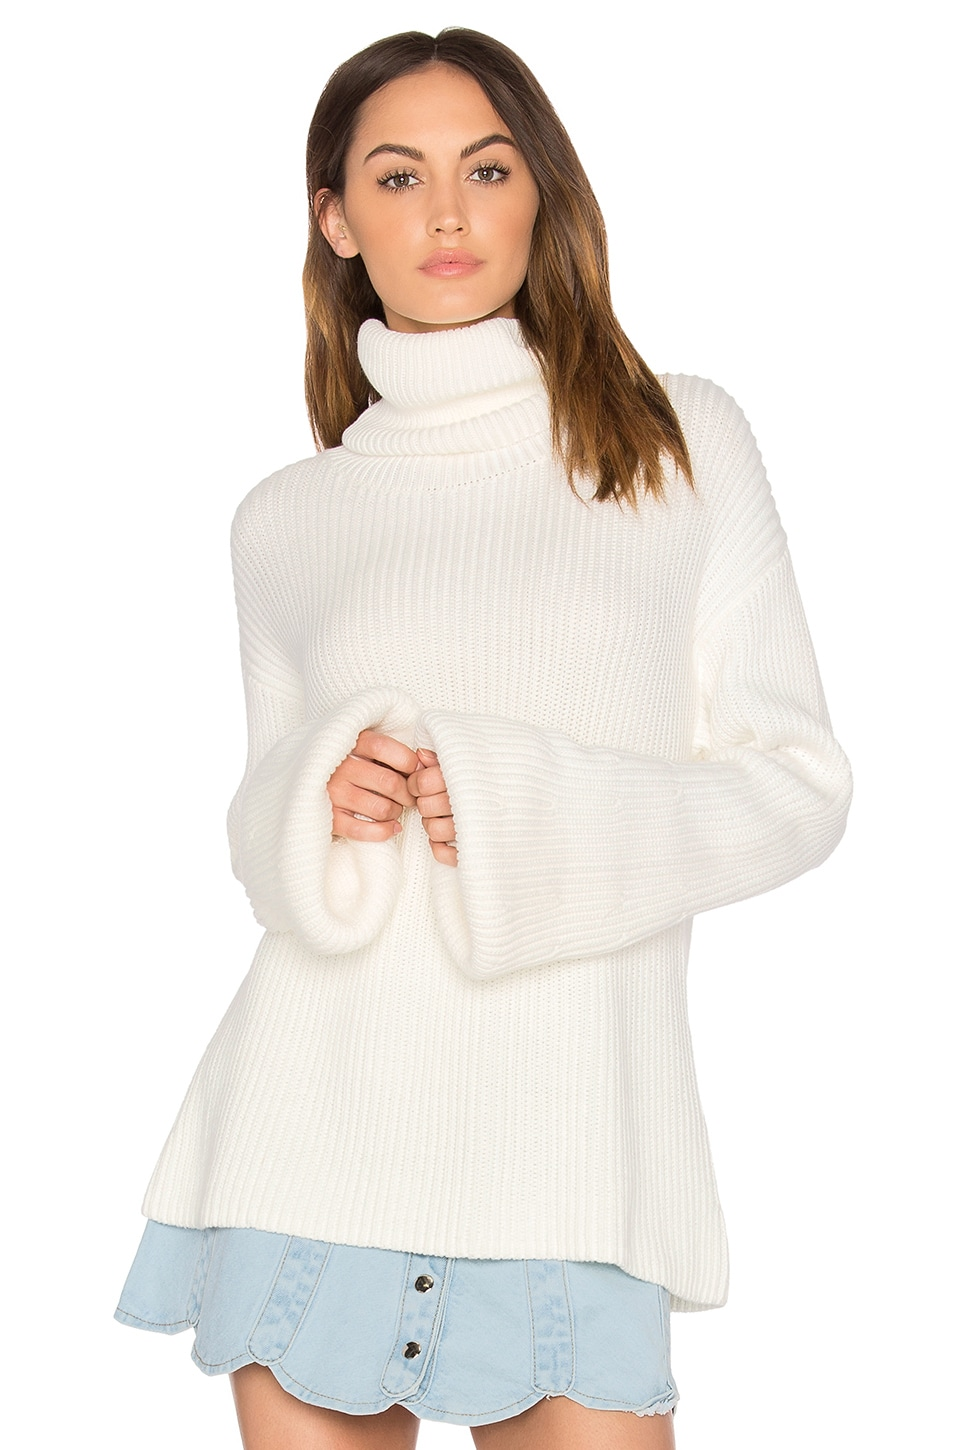 Steele Victoire Knit in Ivory